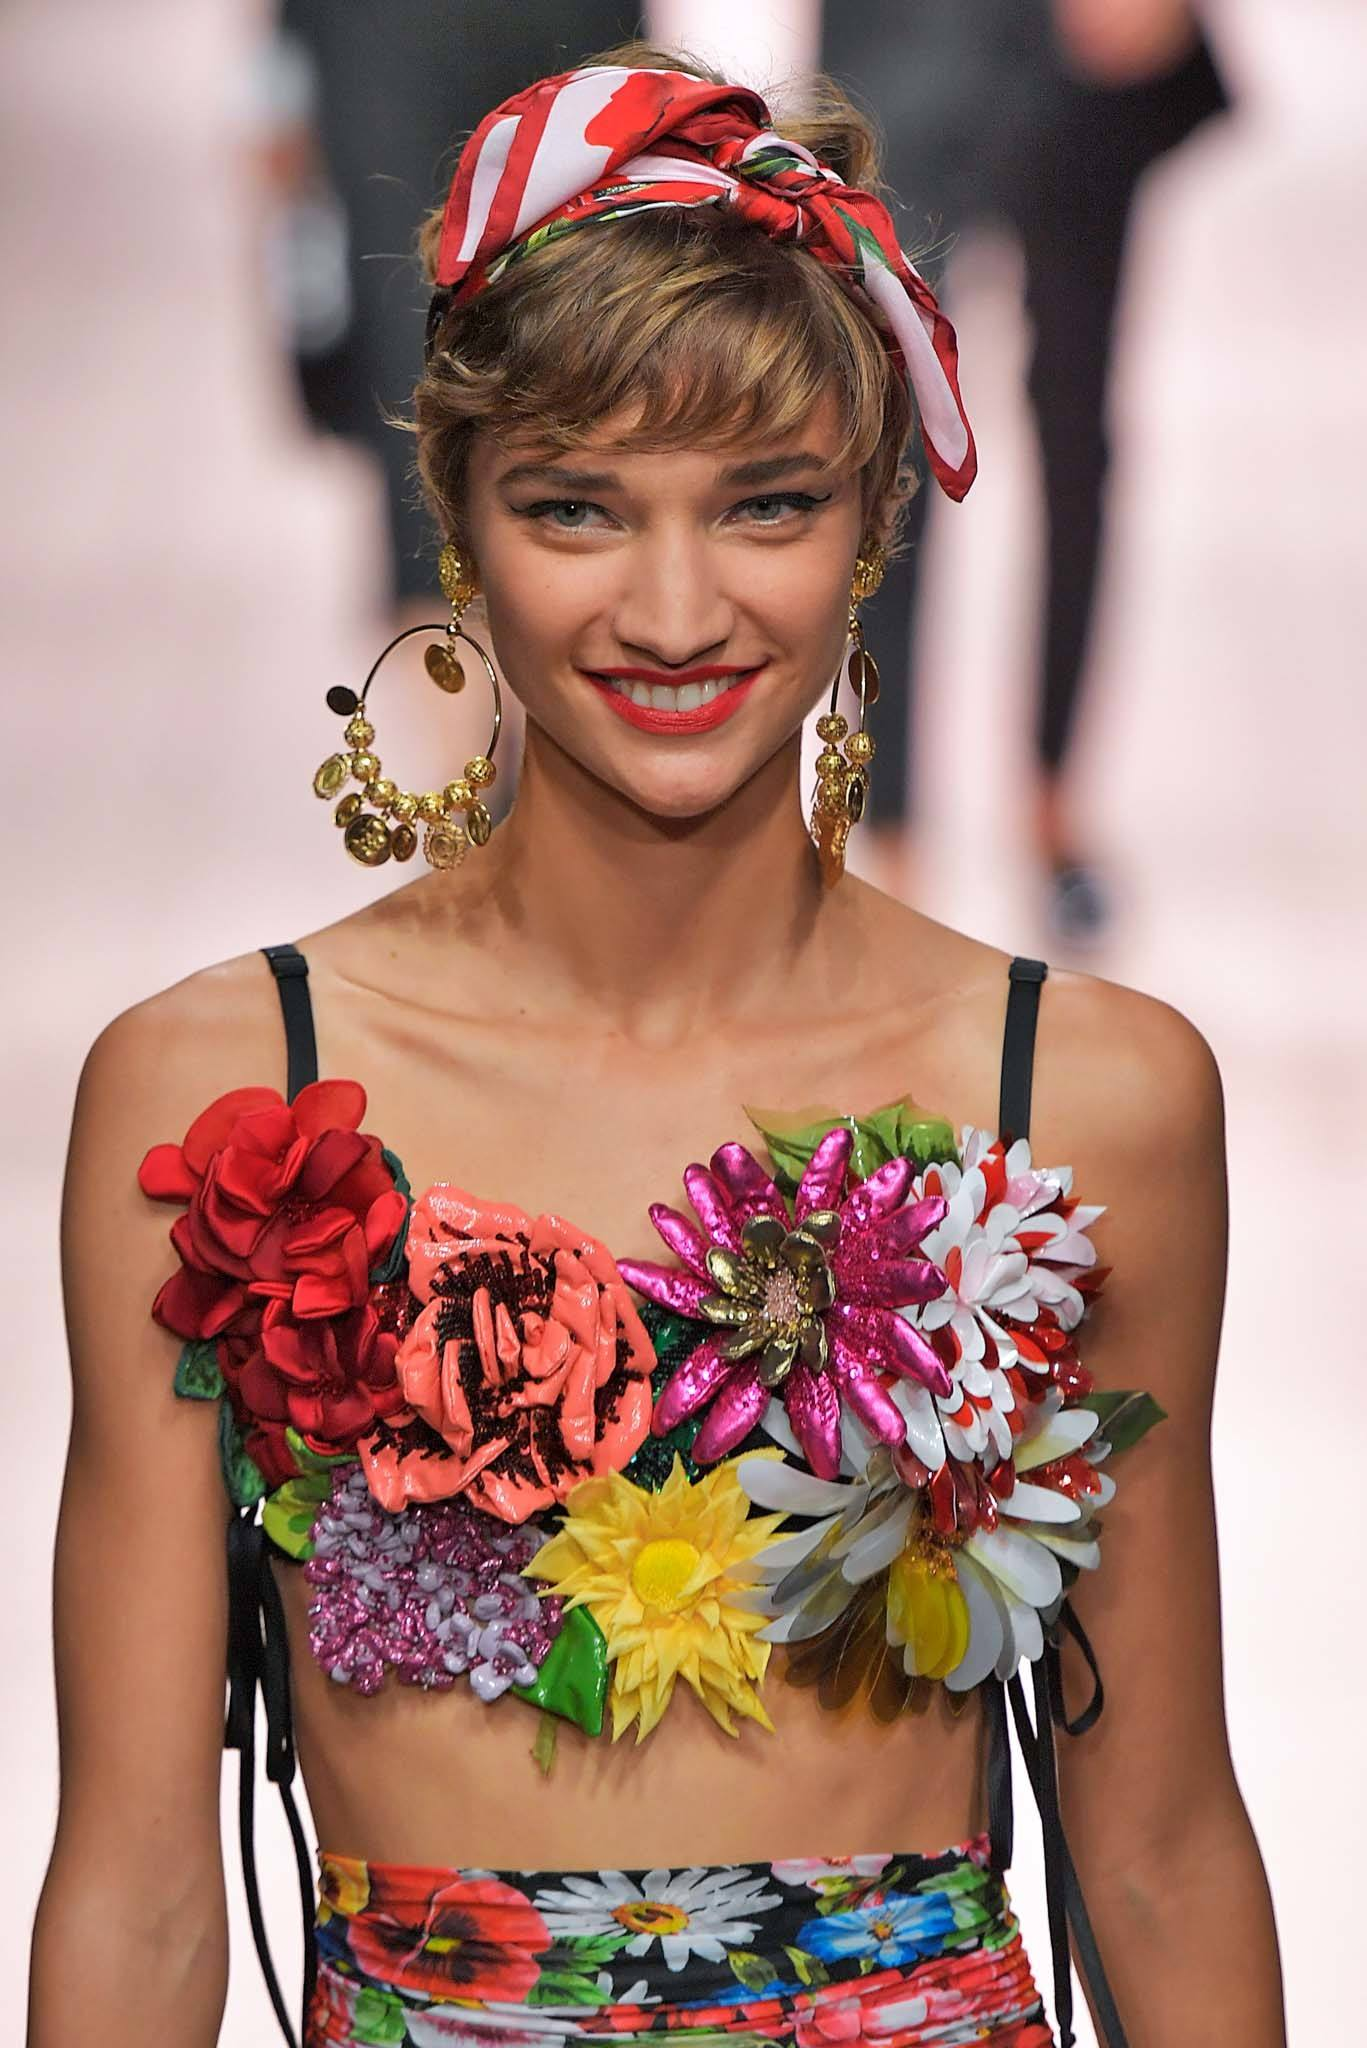 Headband and bandana hairstyles: Model at Dolce and Gabbana SS19 show with light brown pixie cut wearing a red stripped head scarf and floral summer outfit.